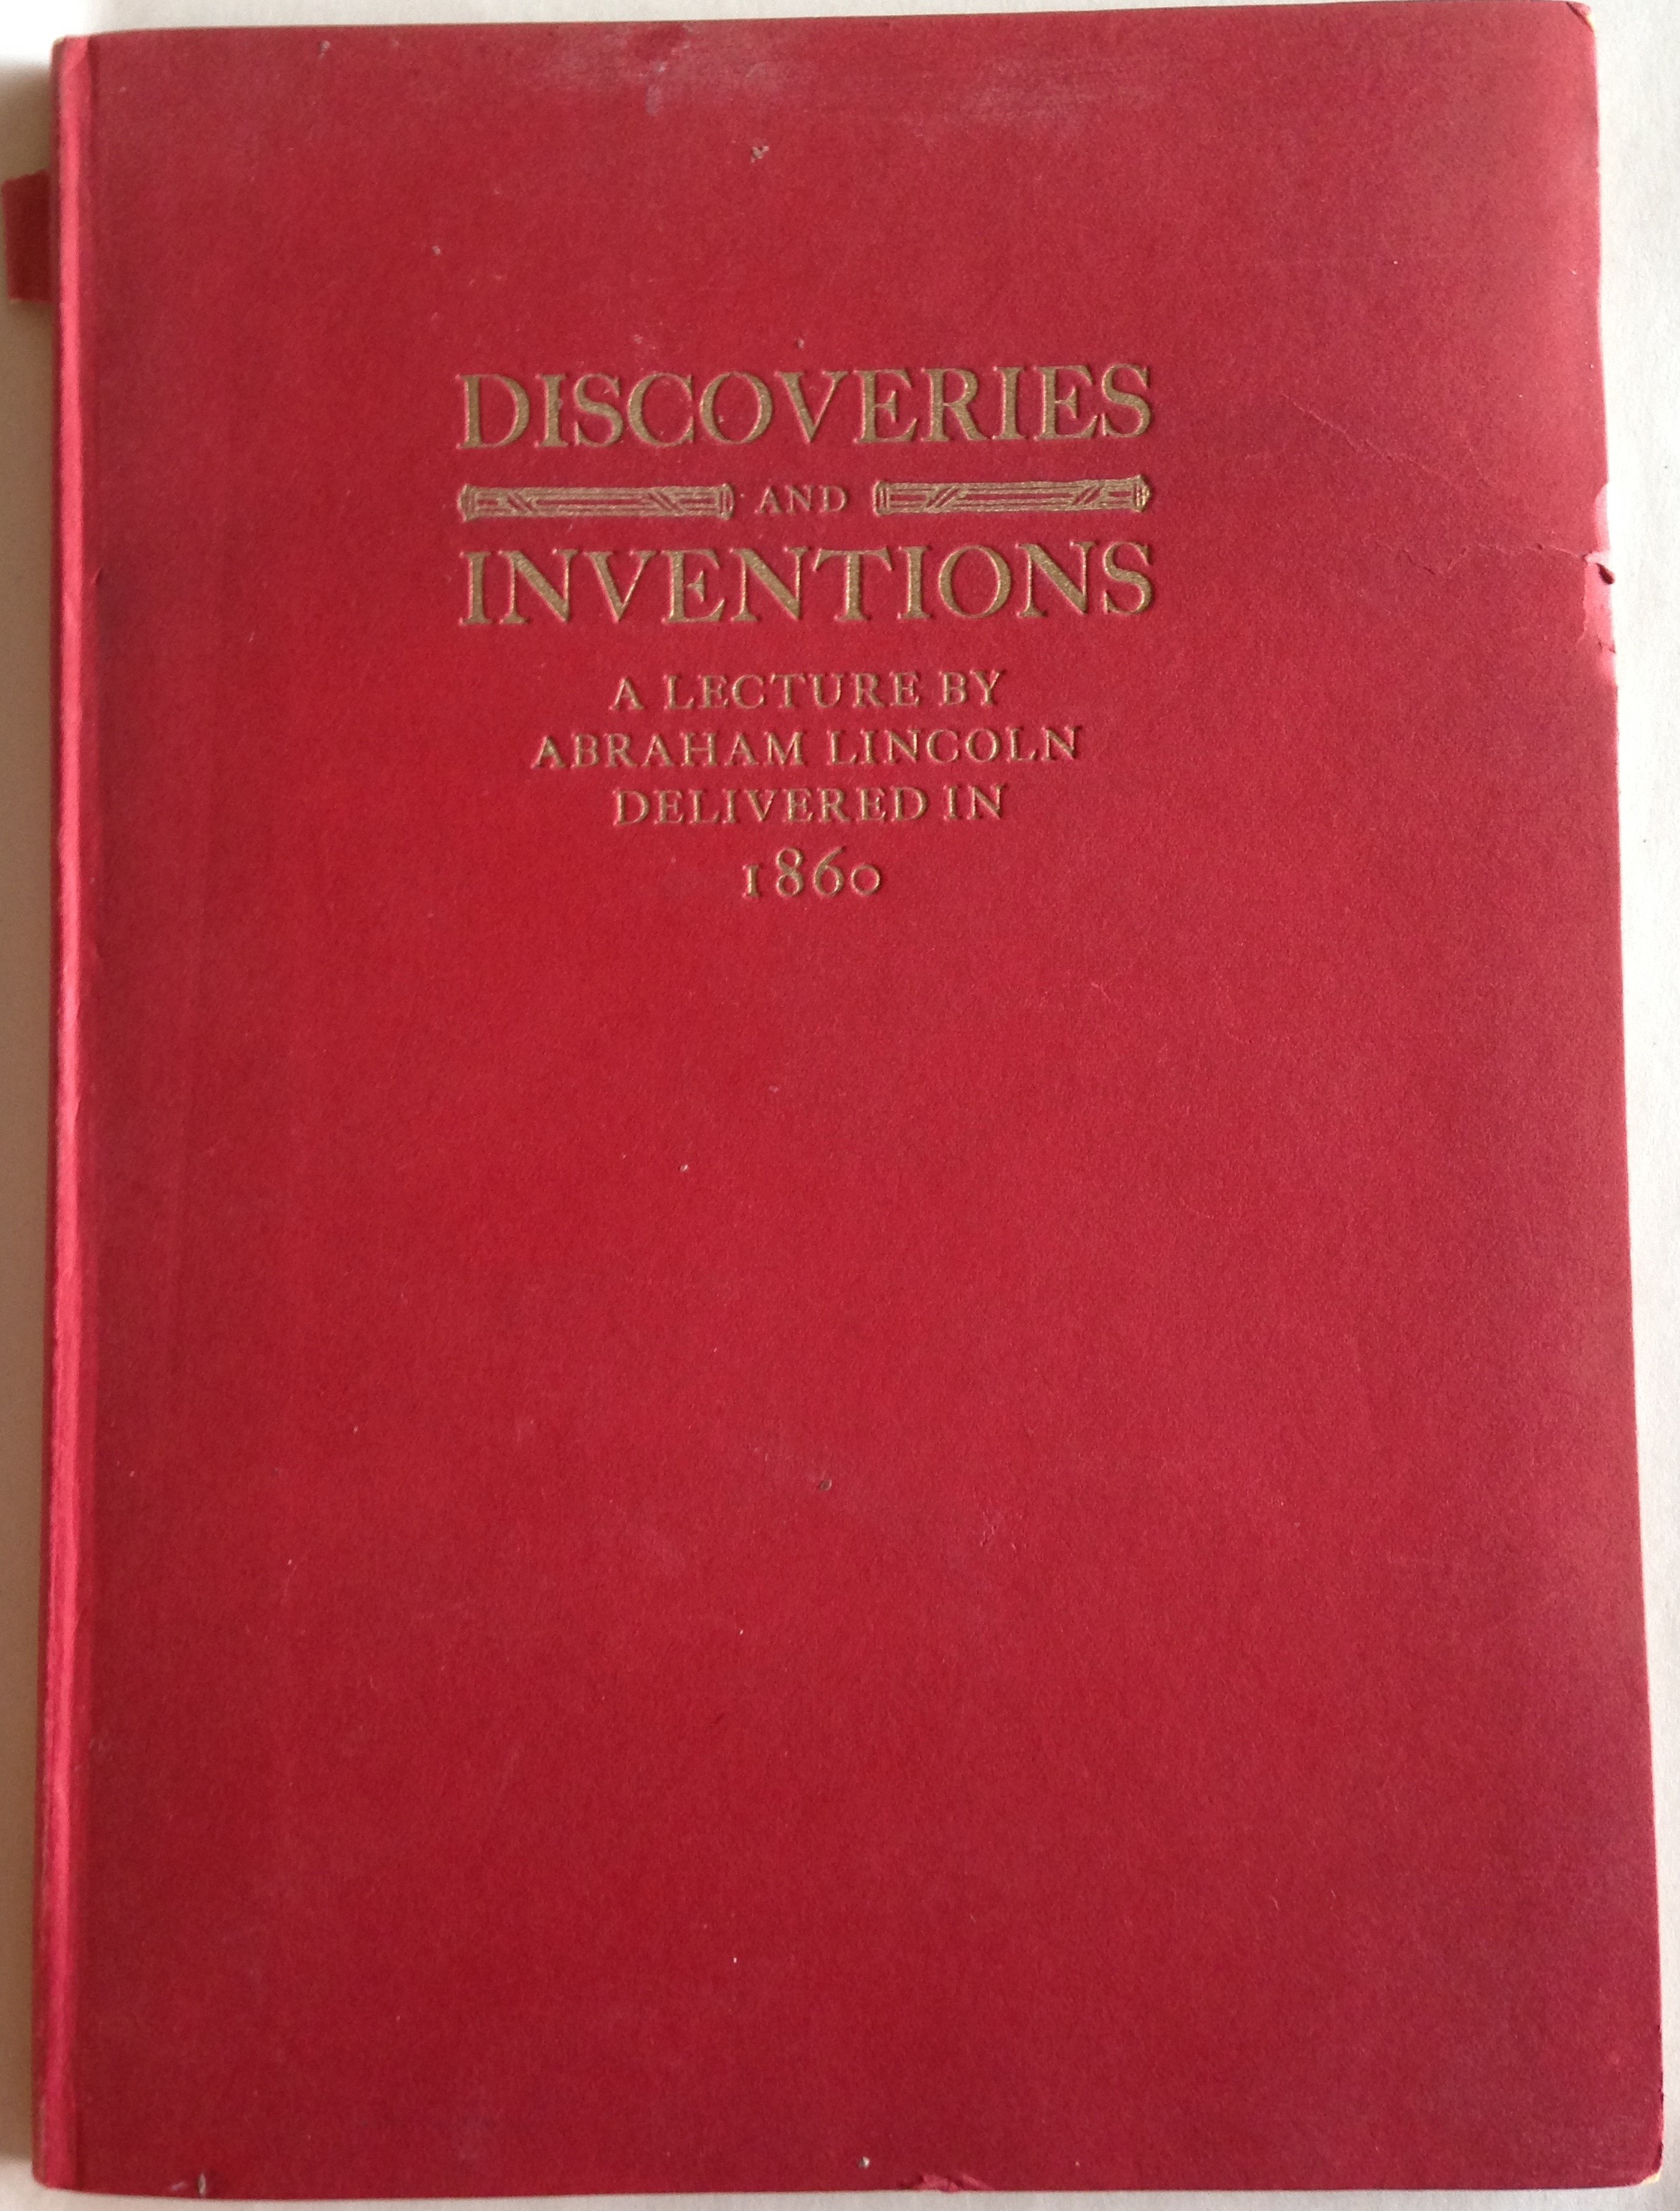 Image for Discoveries and Inventions / A Lecture by Abraham Lincoln Delivered in 1860